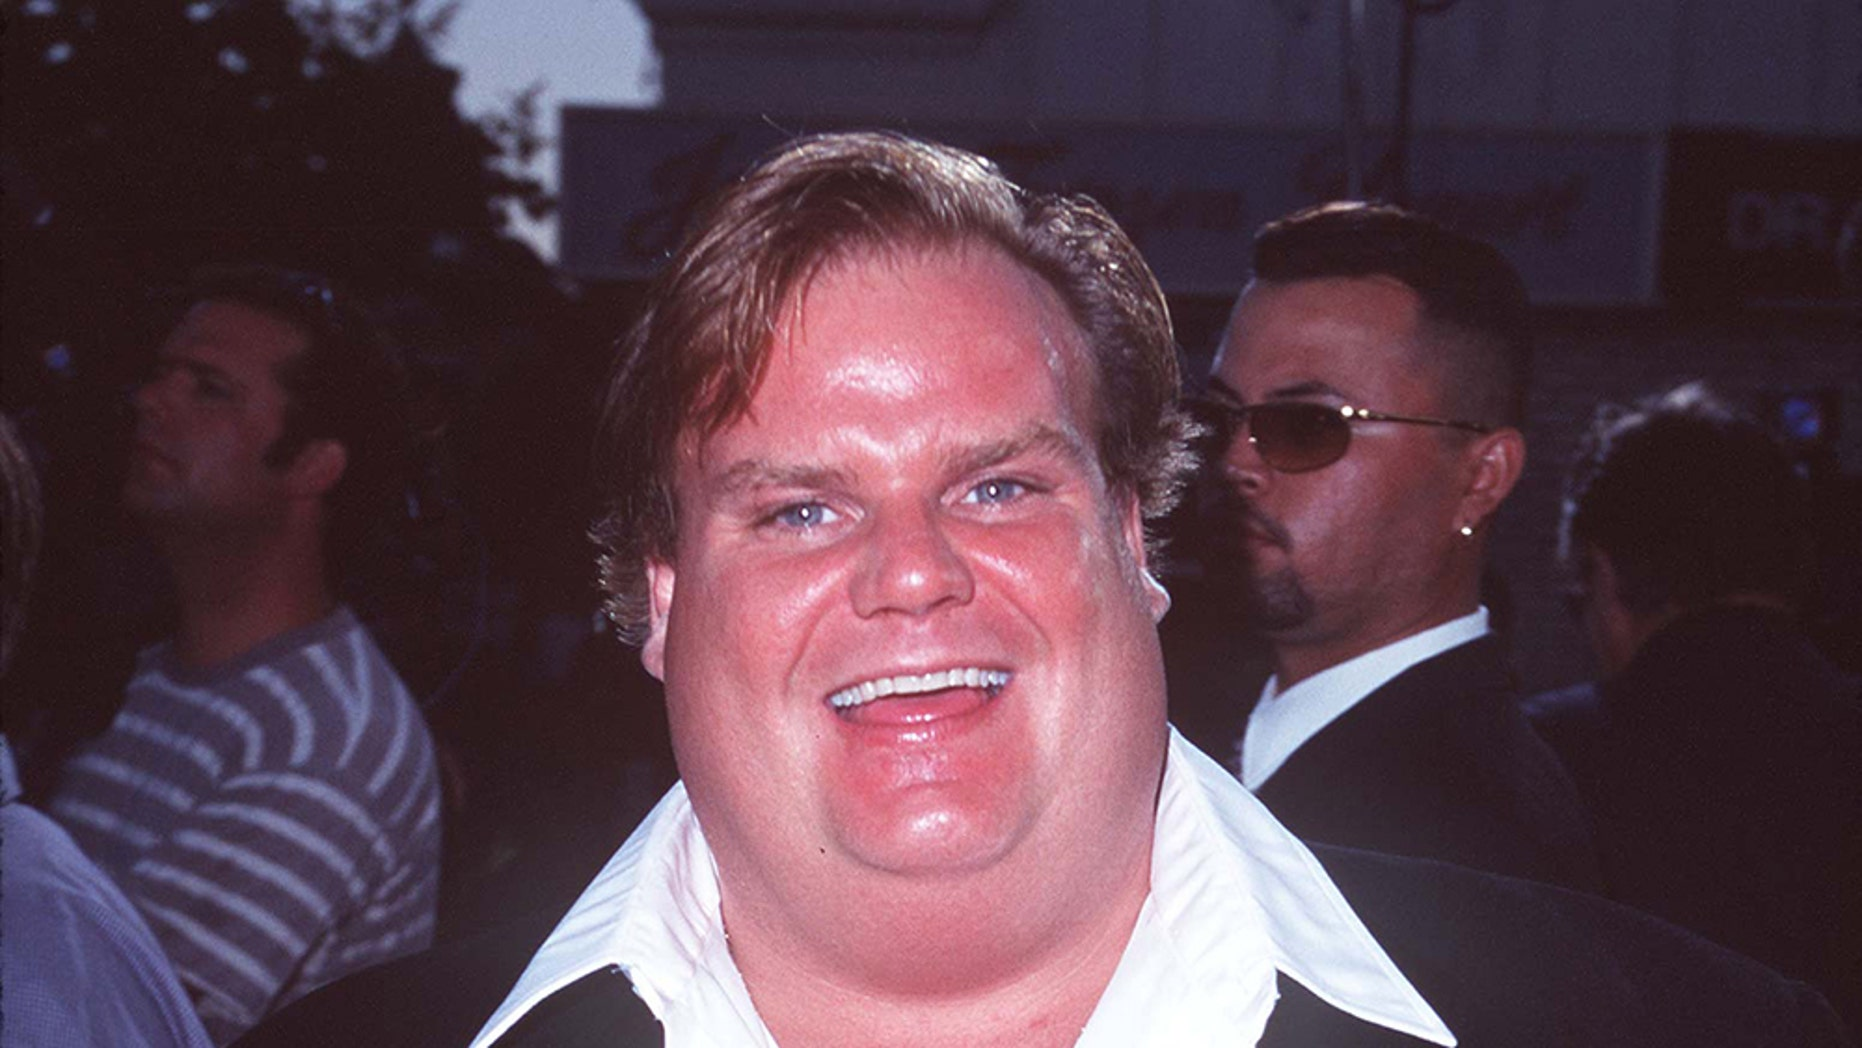 Chris Farley's brother recalls growing up with comic legend, shares how family healed after tragic death